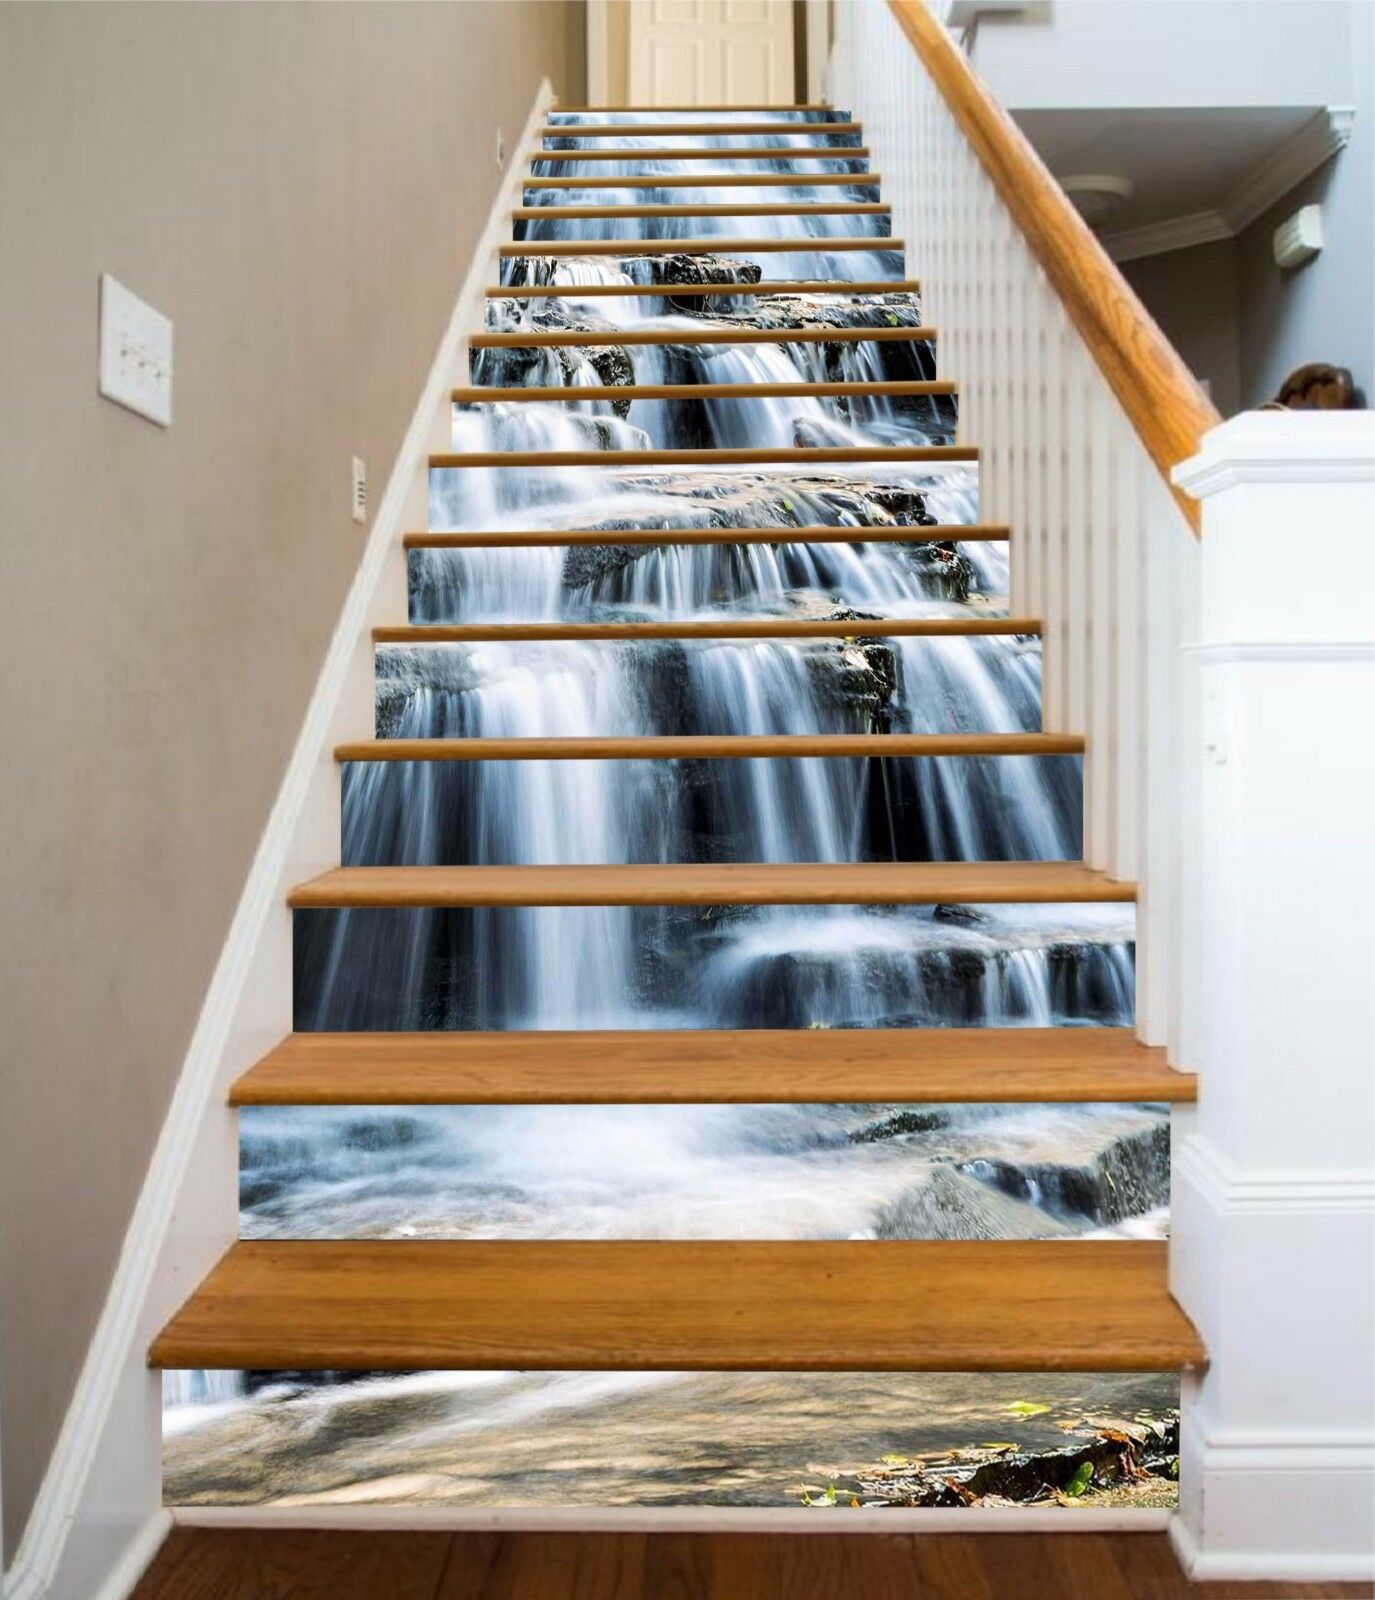 3D Full Waterfall 135 Risers Decoration Photo Mural Vinyl Decal Wallpaper CA